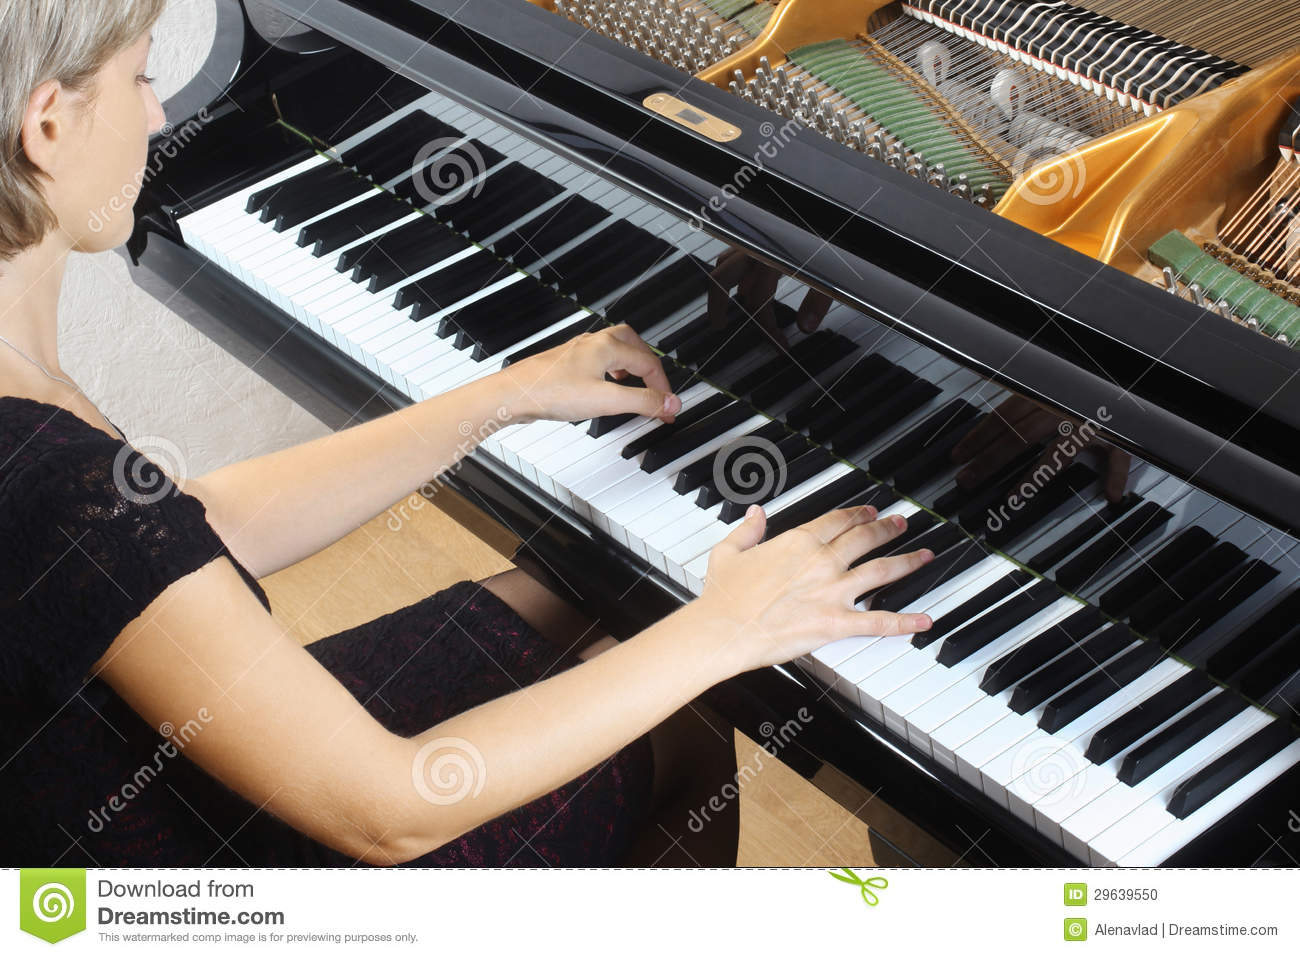 Piano Player Pianist Playing Stock Photo - Image: 29639550